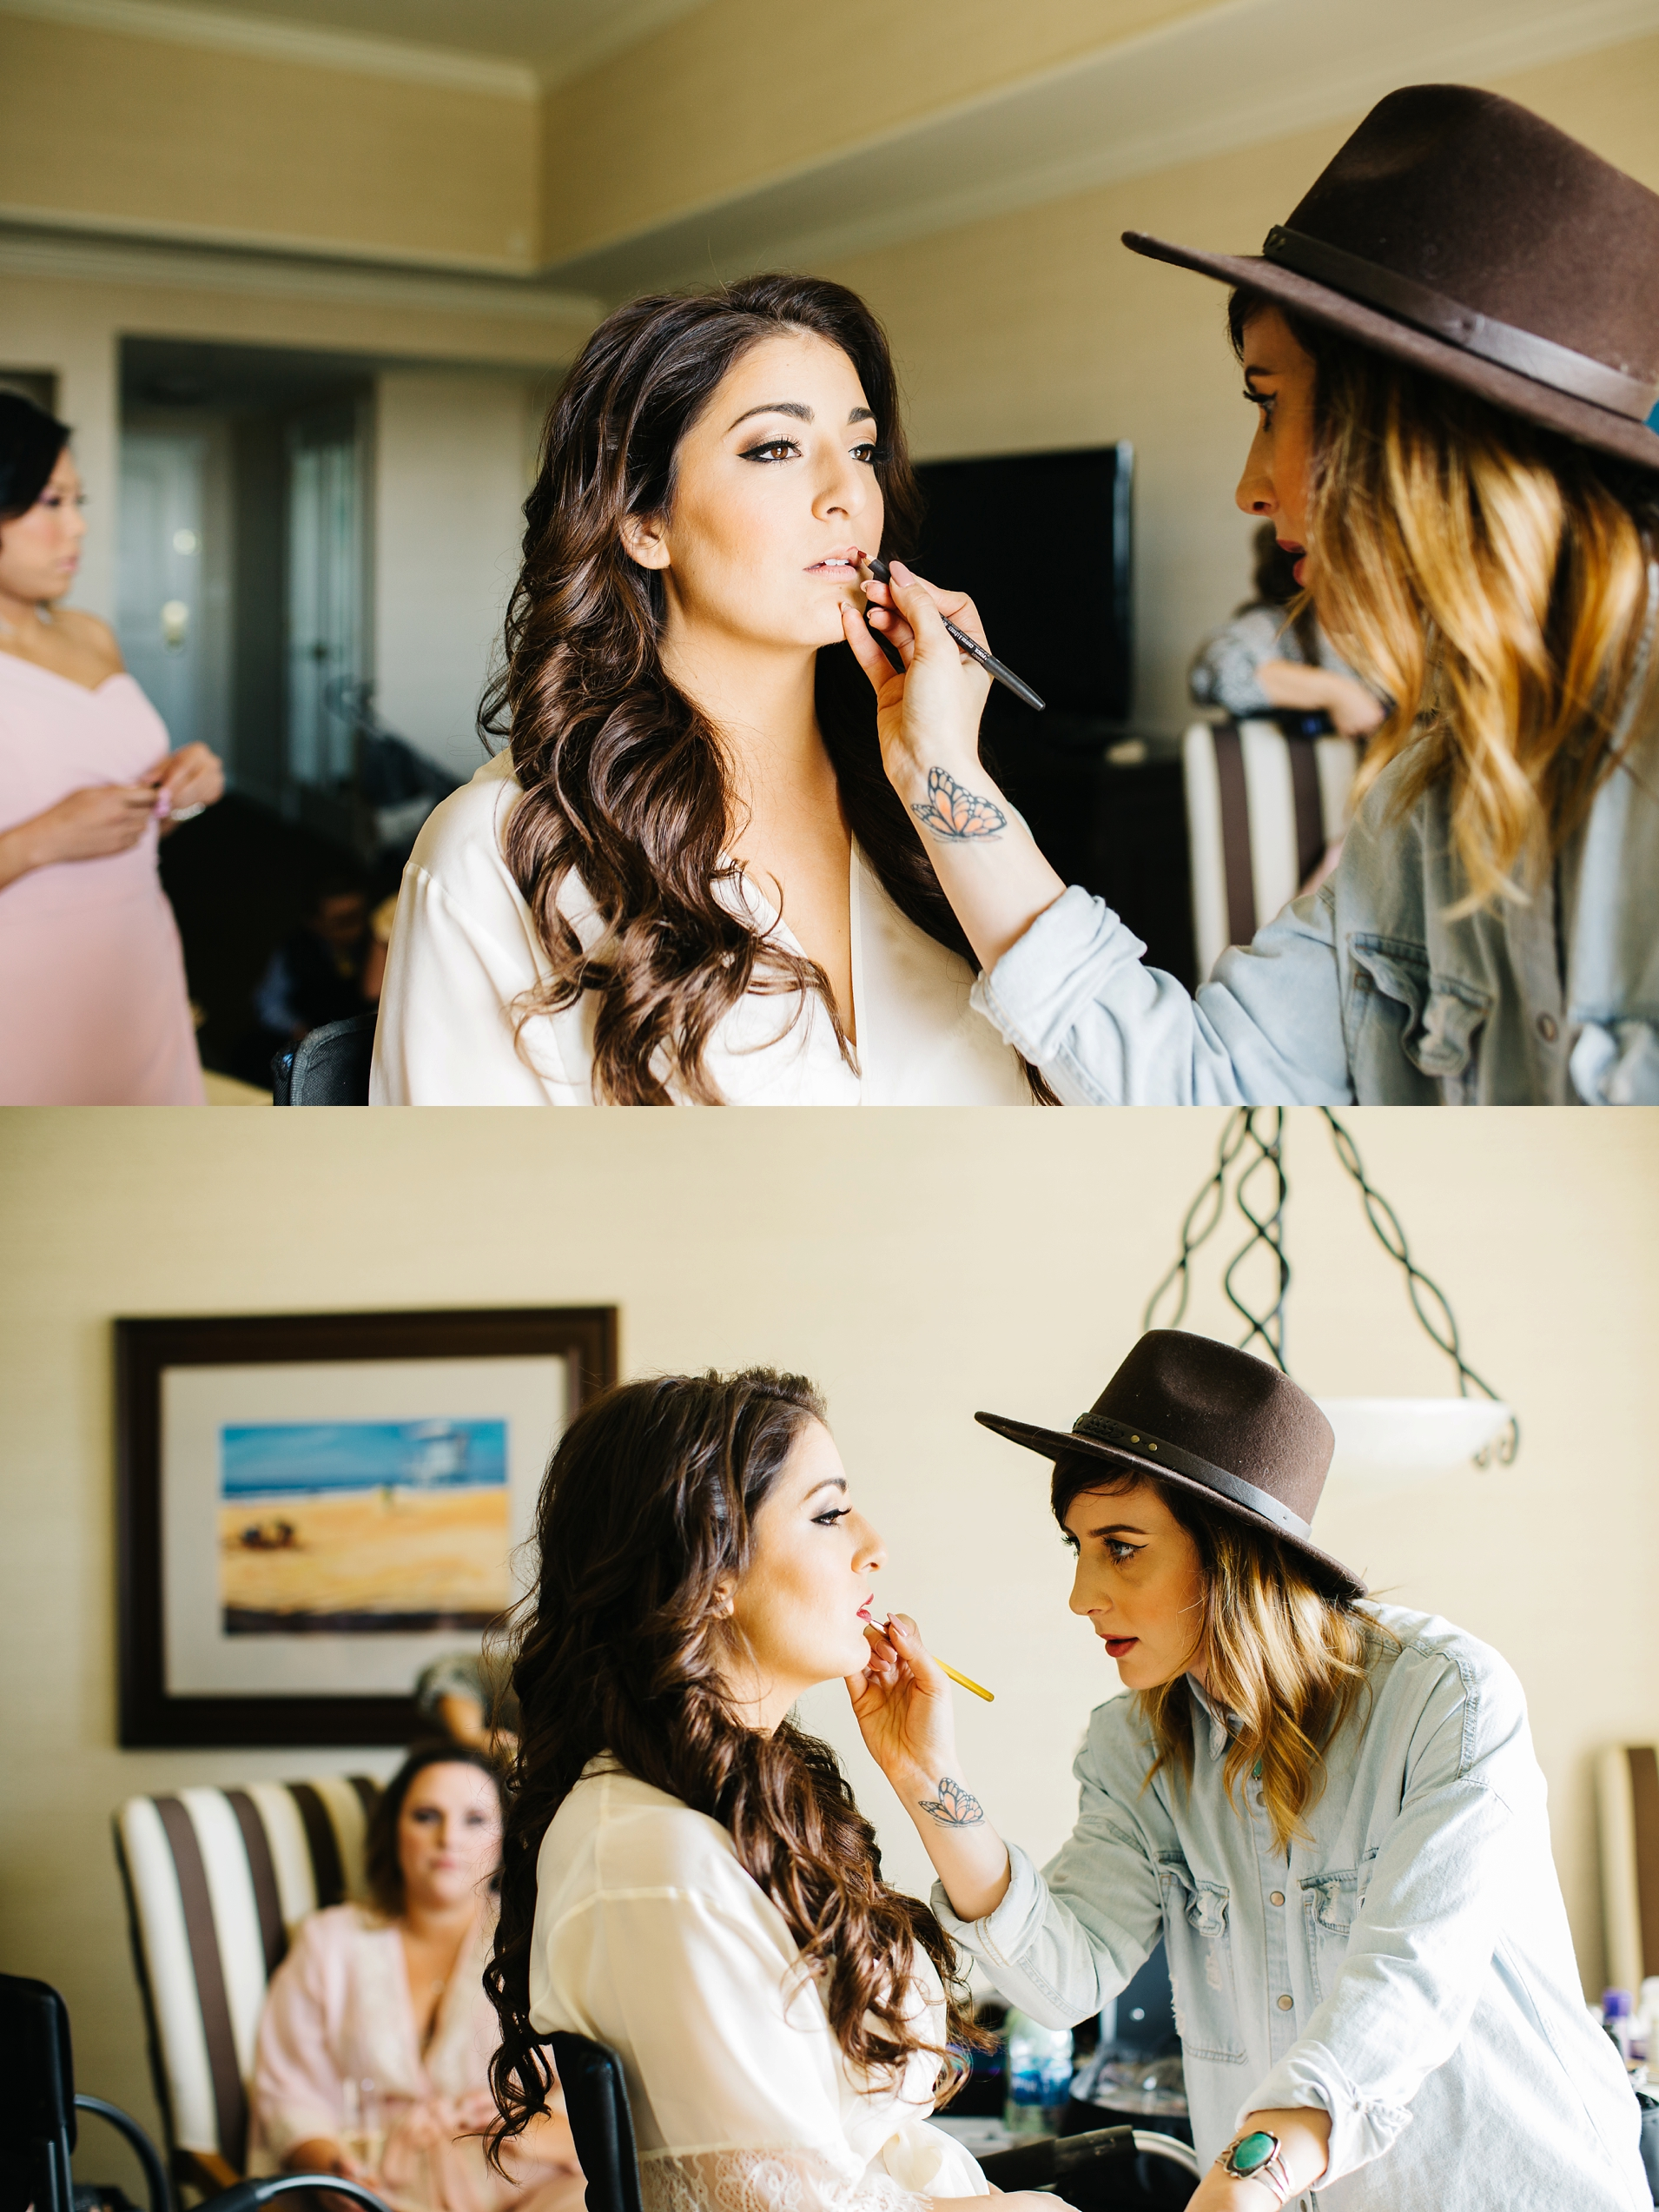 Bride getting makeup done - Brittney Hannon Photography